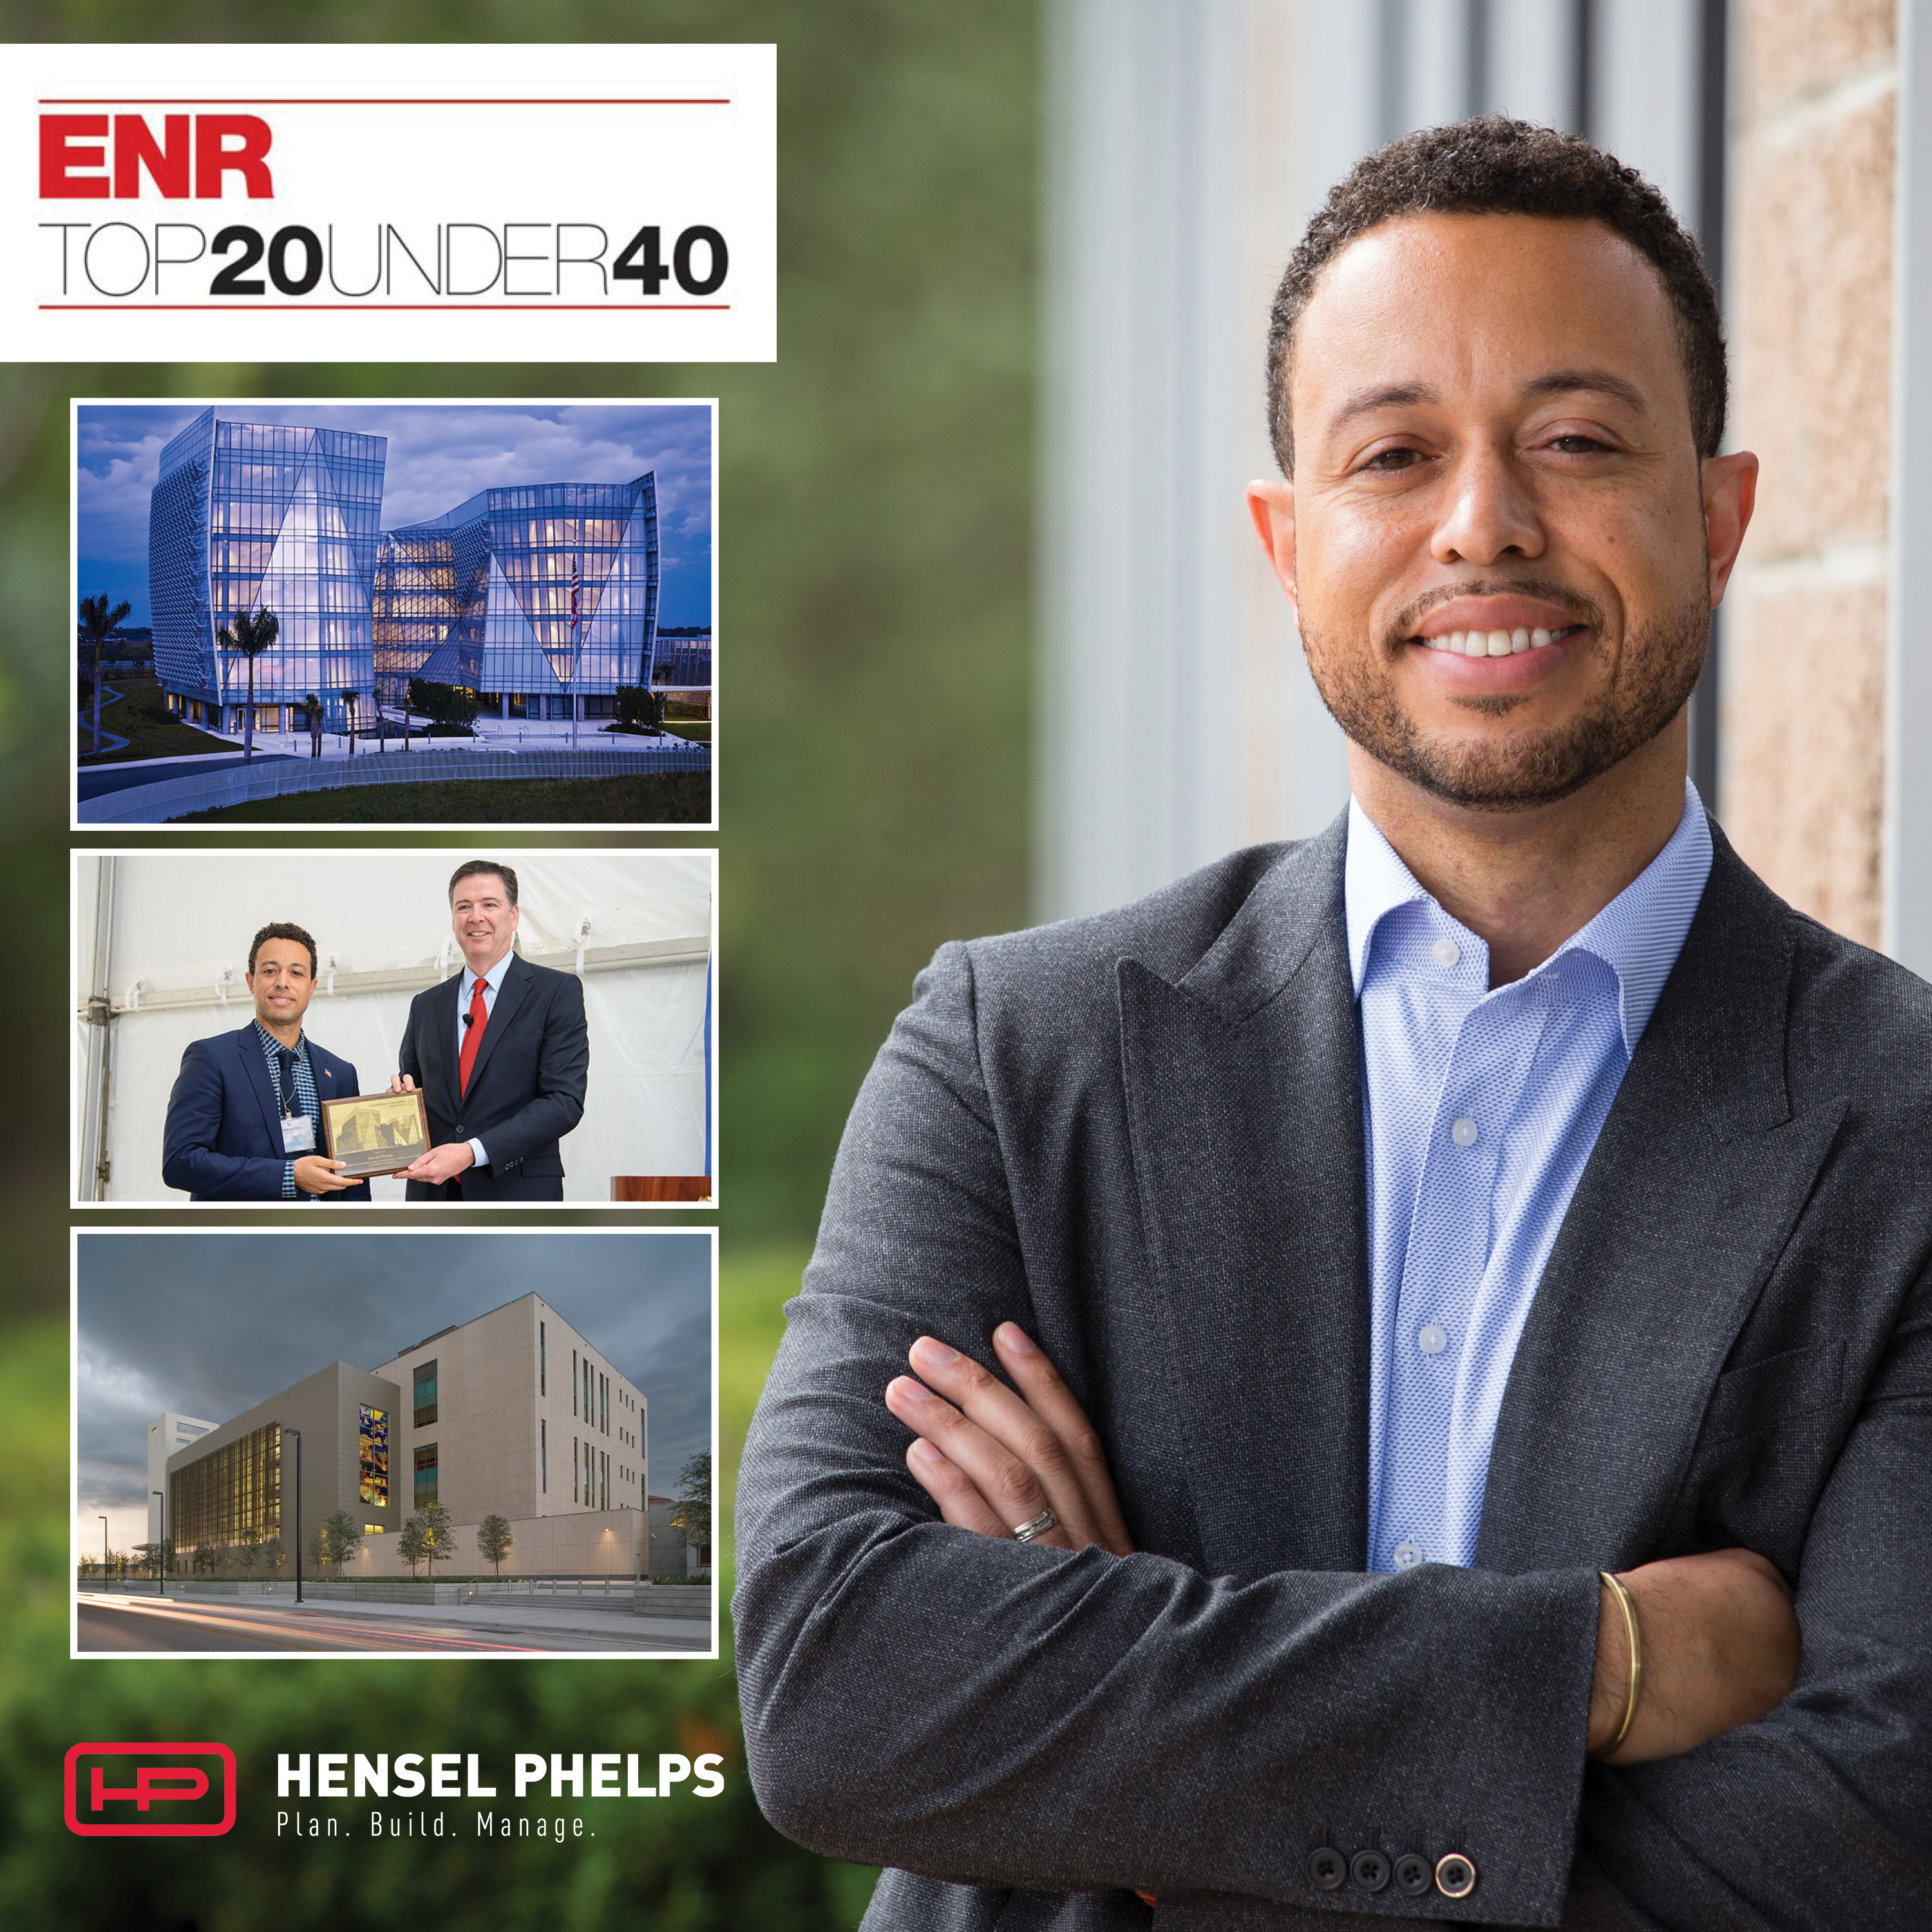 ENR National Selects Top 20 Under 40 Standouts! - Hensel Phelps